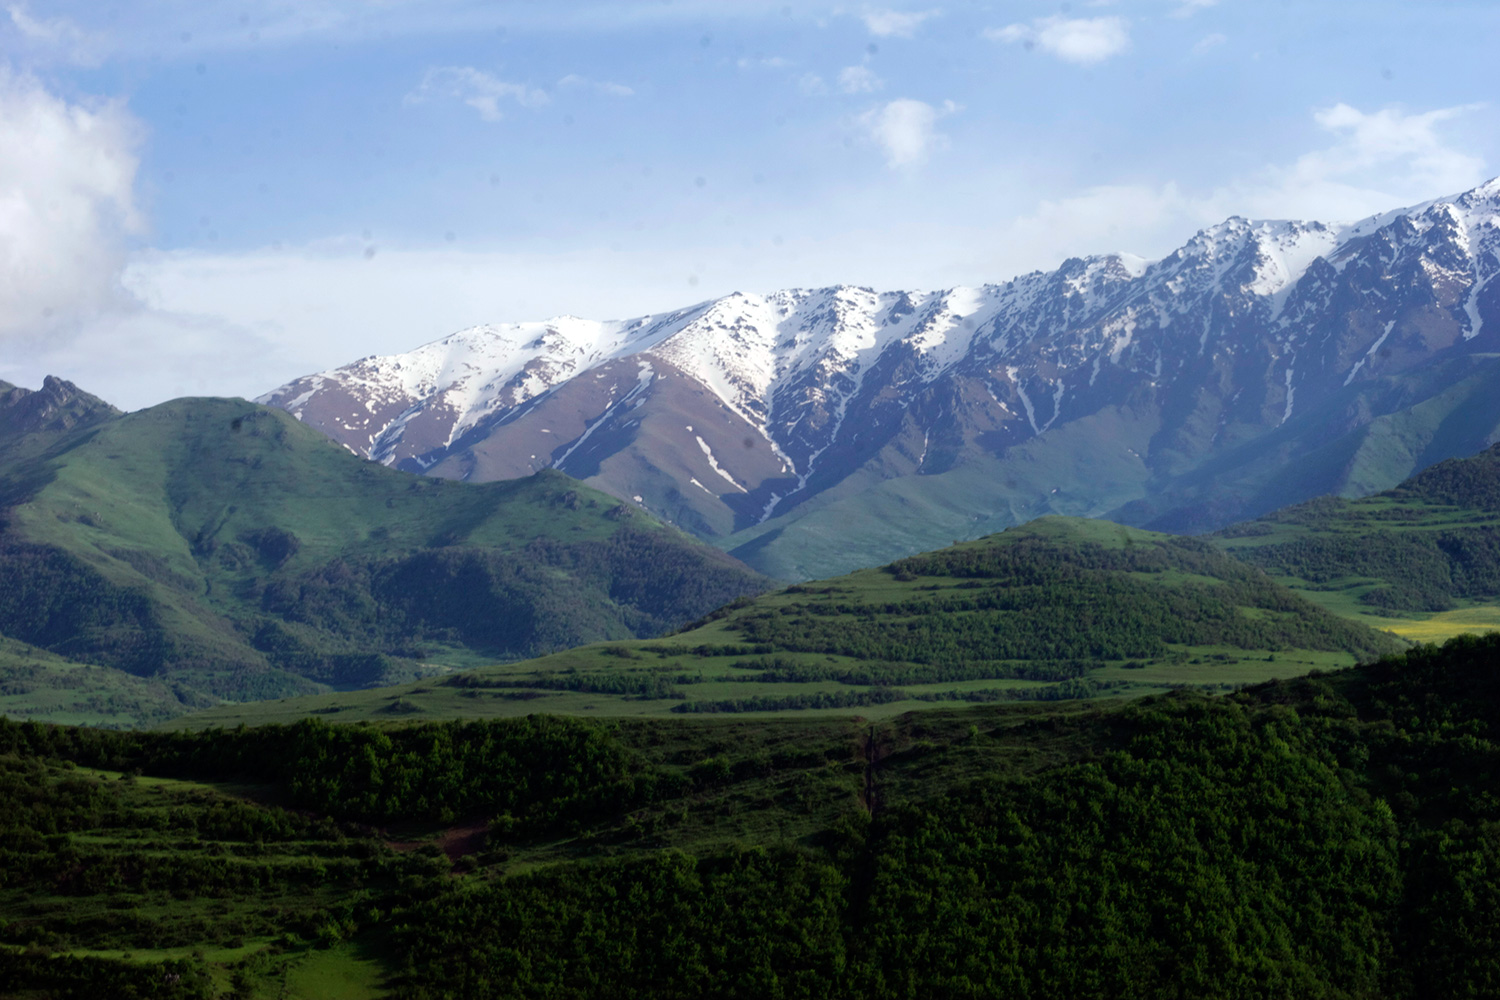 View from Tatev Village